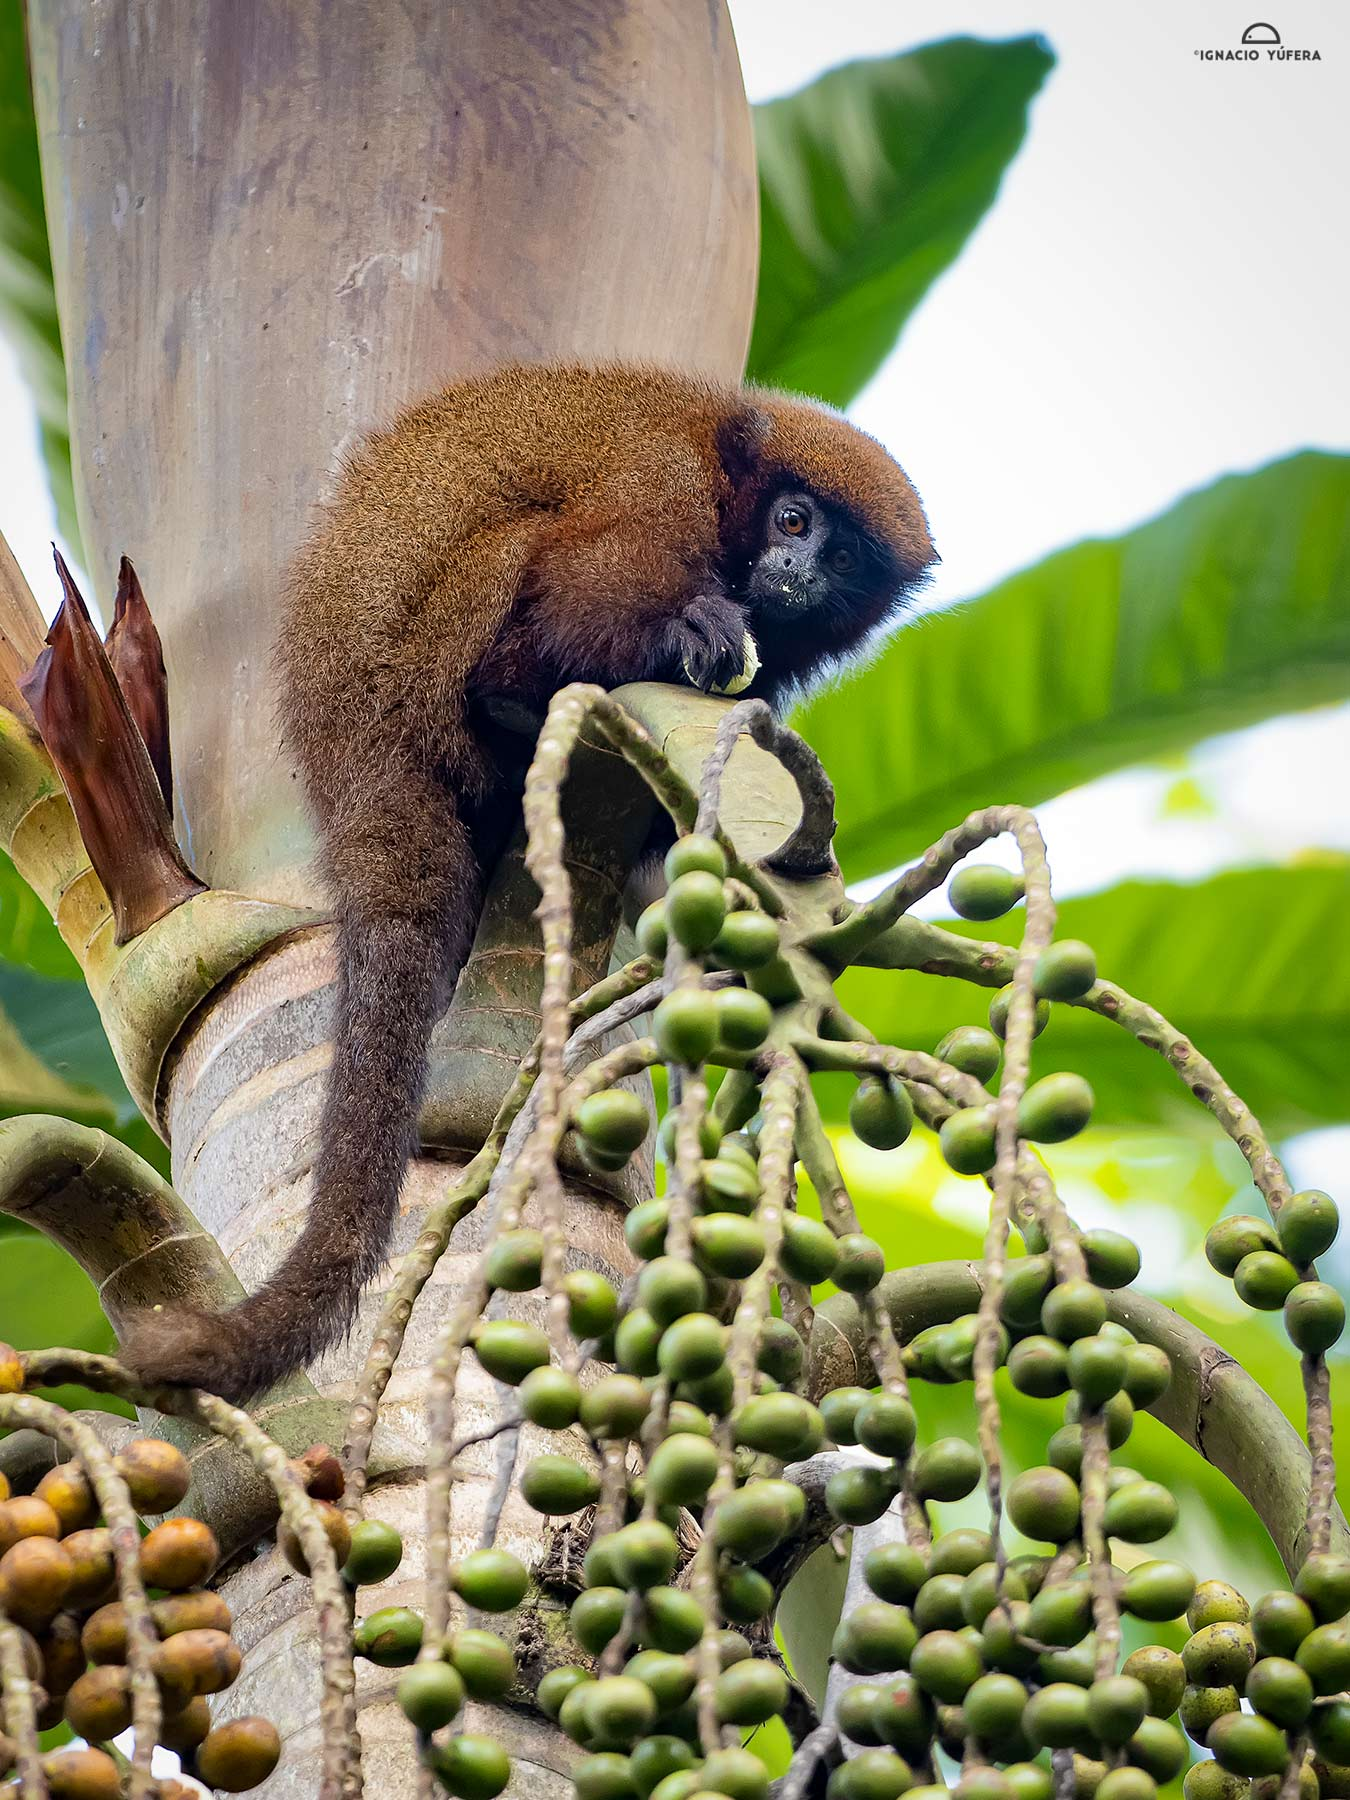 Brown Titi Monkey (Plecturocebus brunneus), feeding on palm fruit, Madre de Dios, Peru